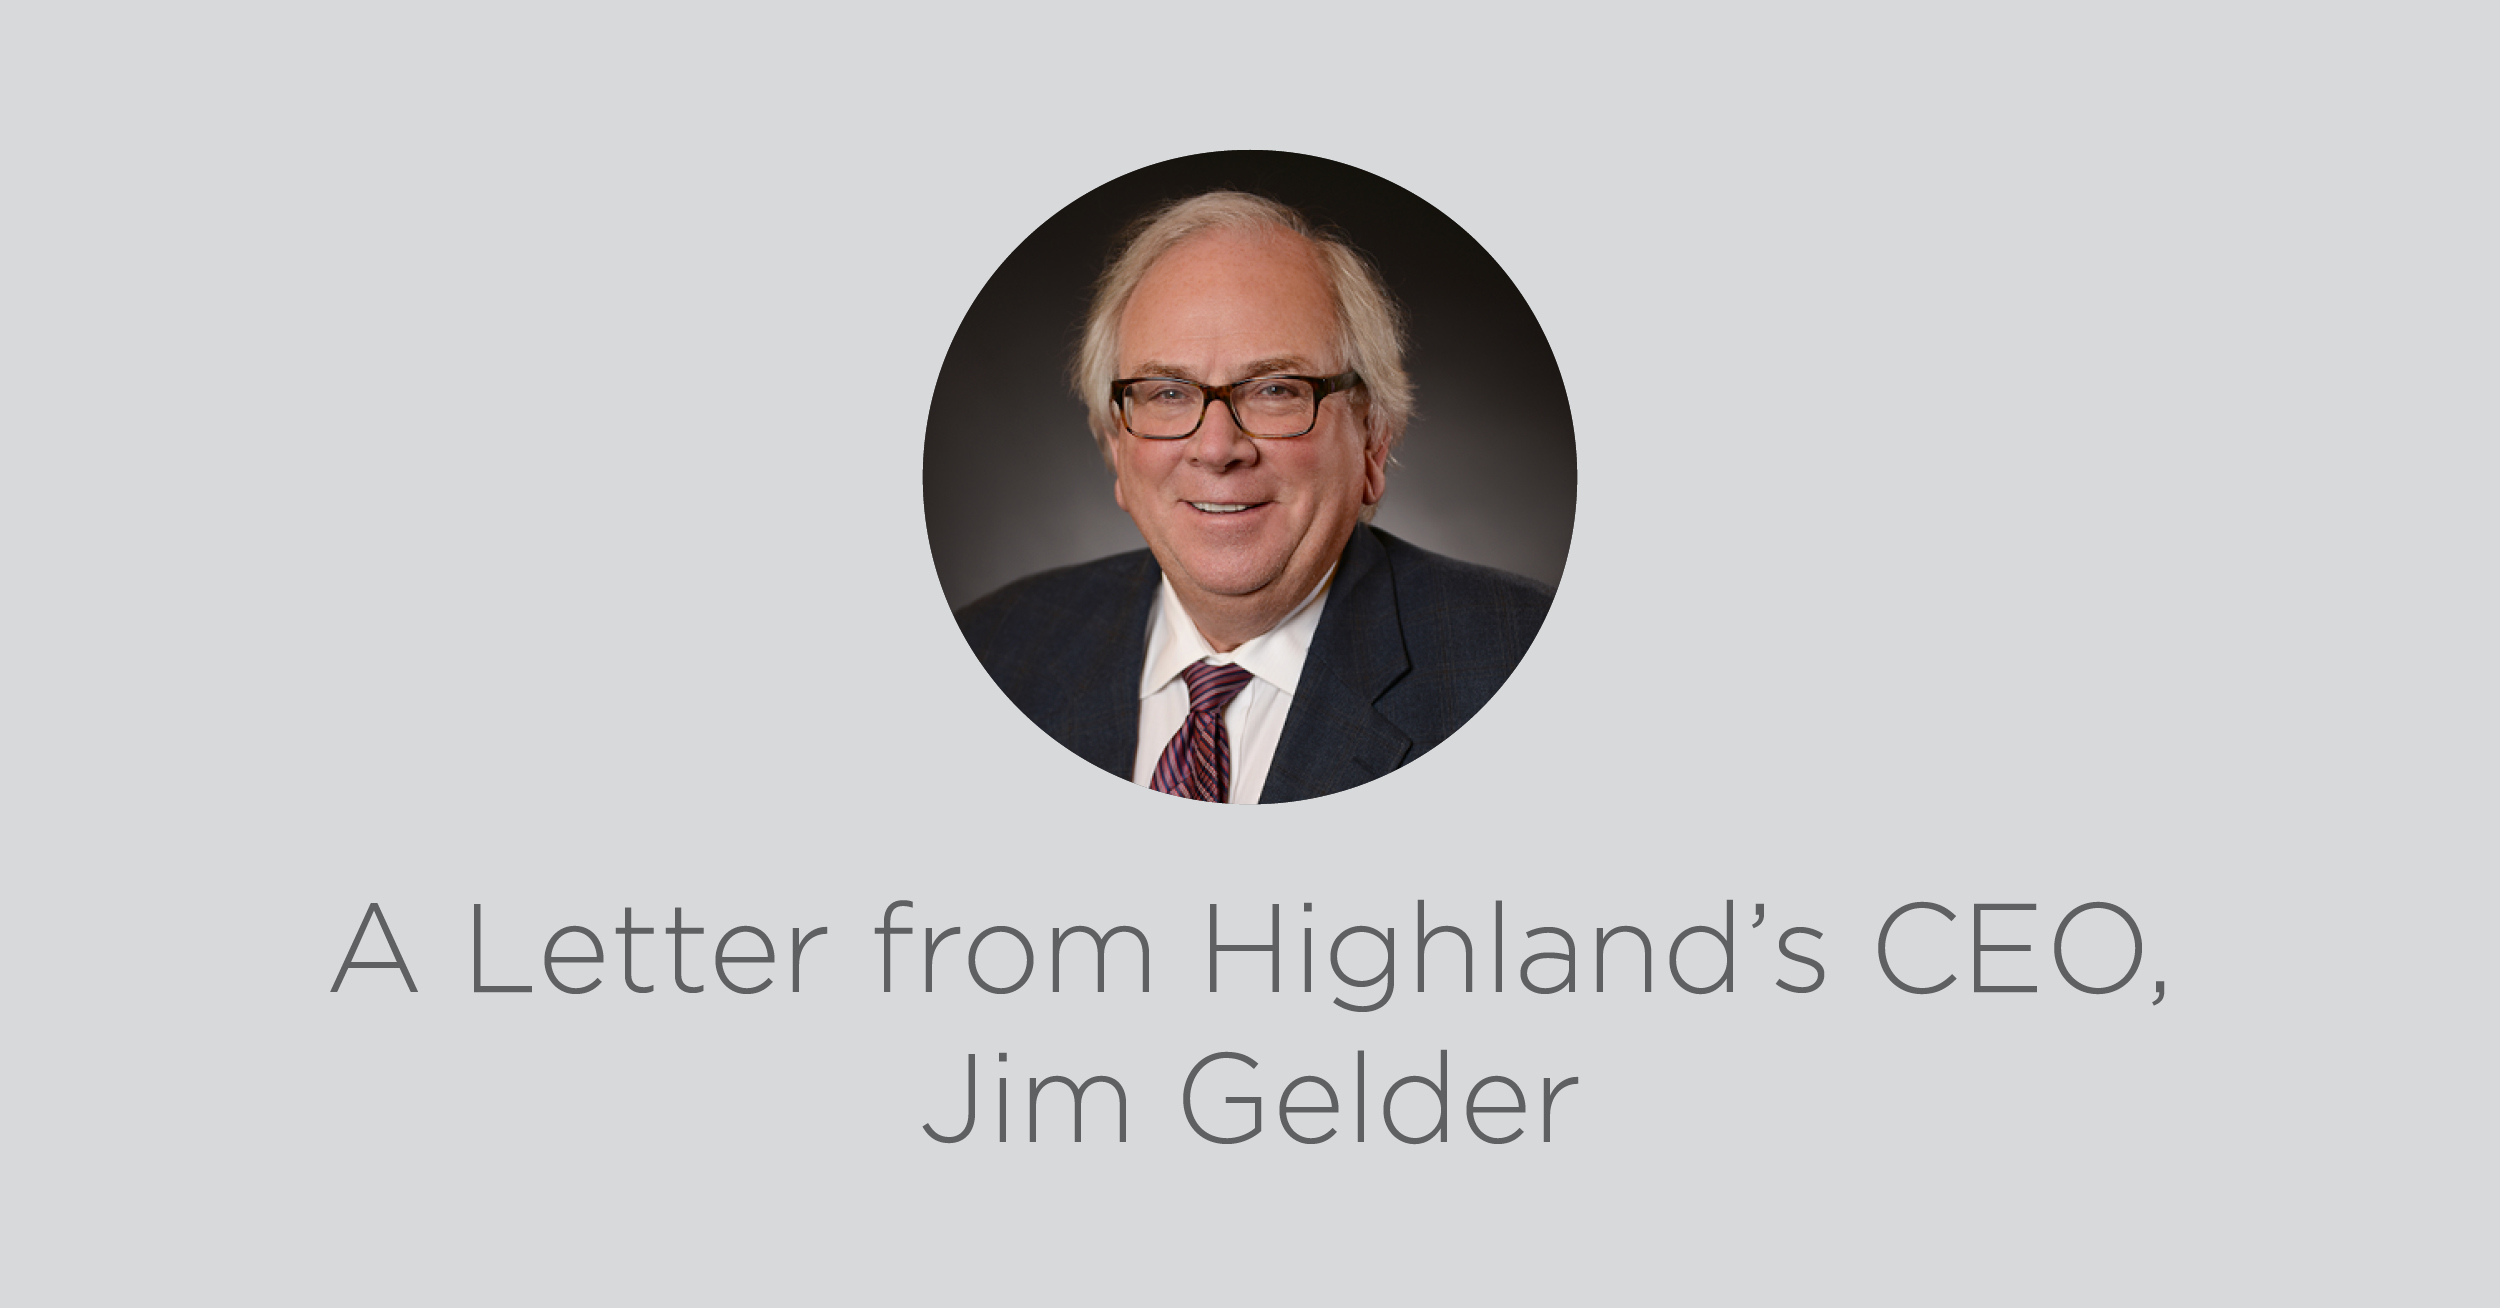 A letter from Highland's CEO, Jim Gelder